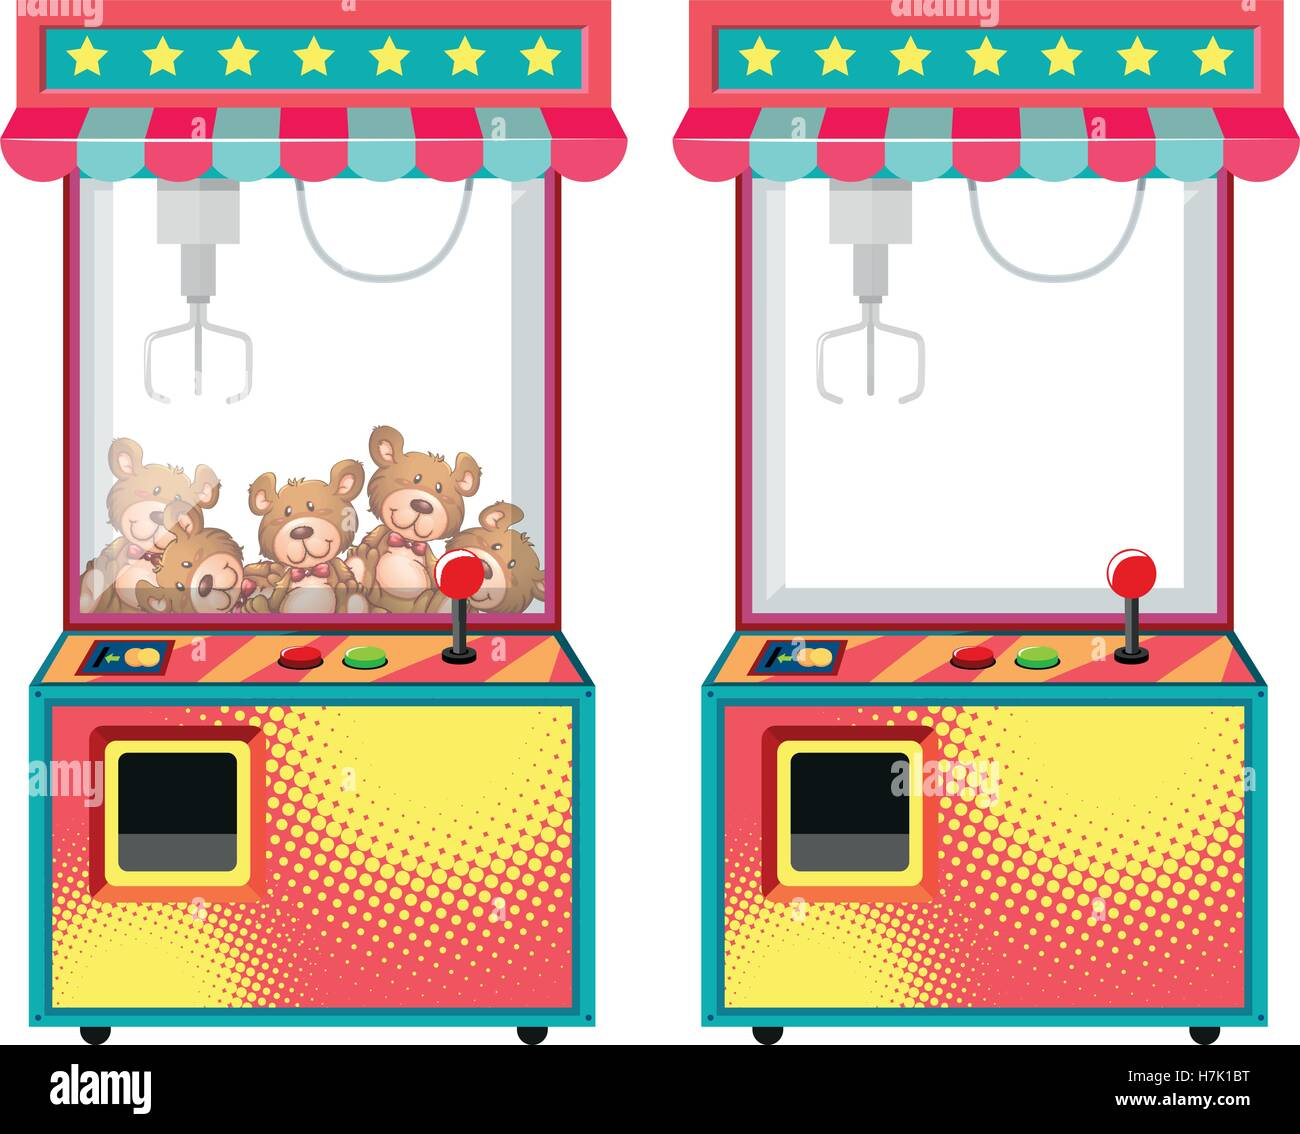 Arcade game machines with dolls illustration - Stock Vector